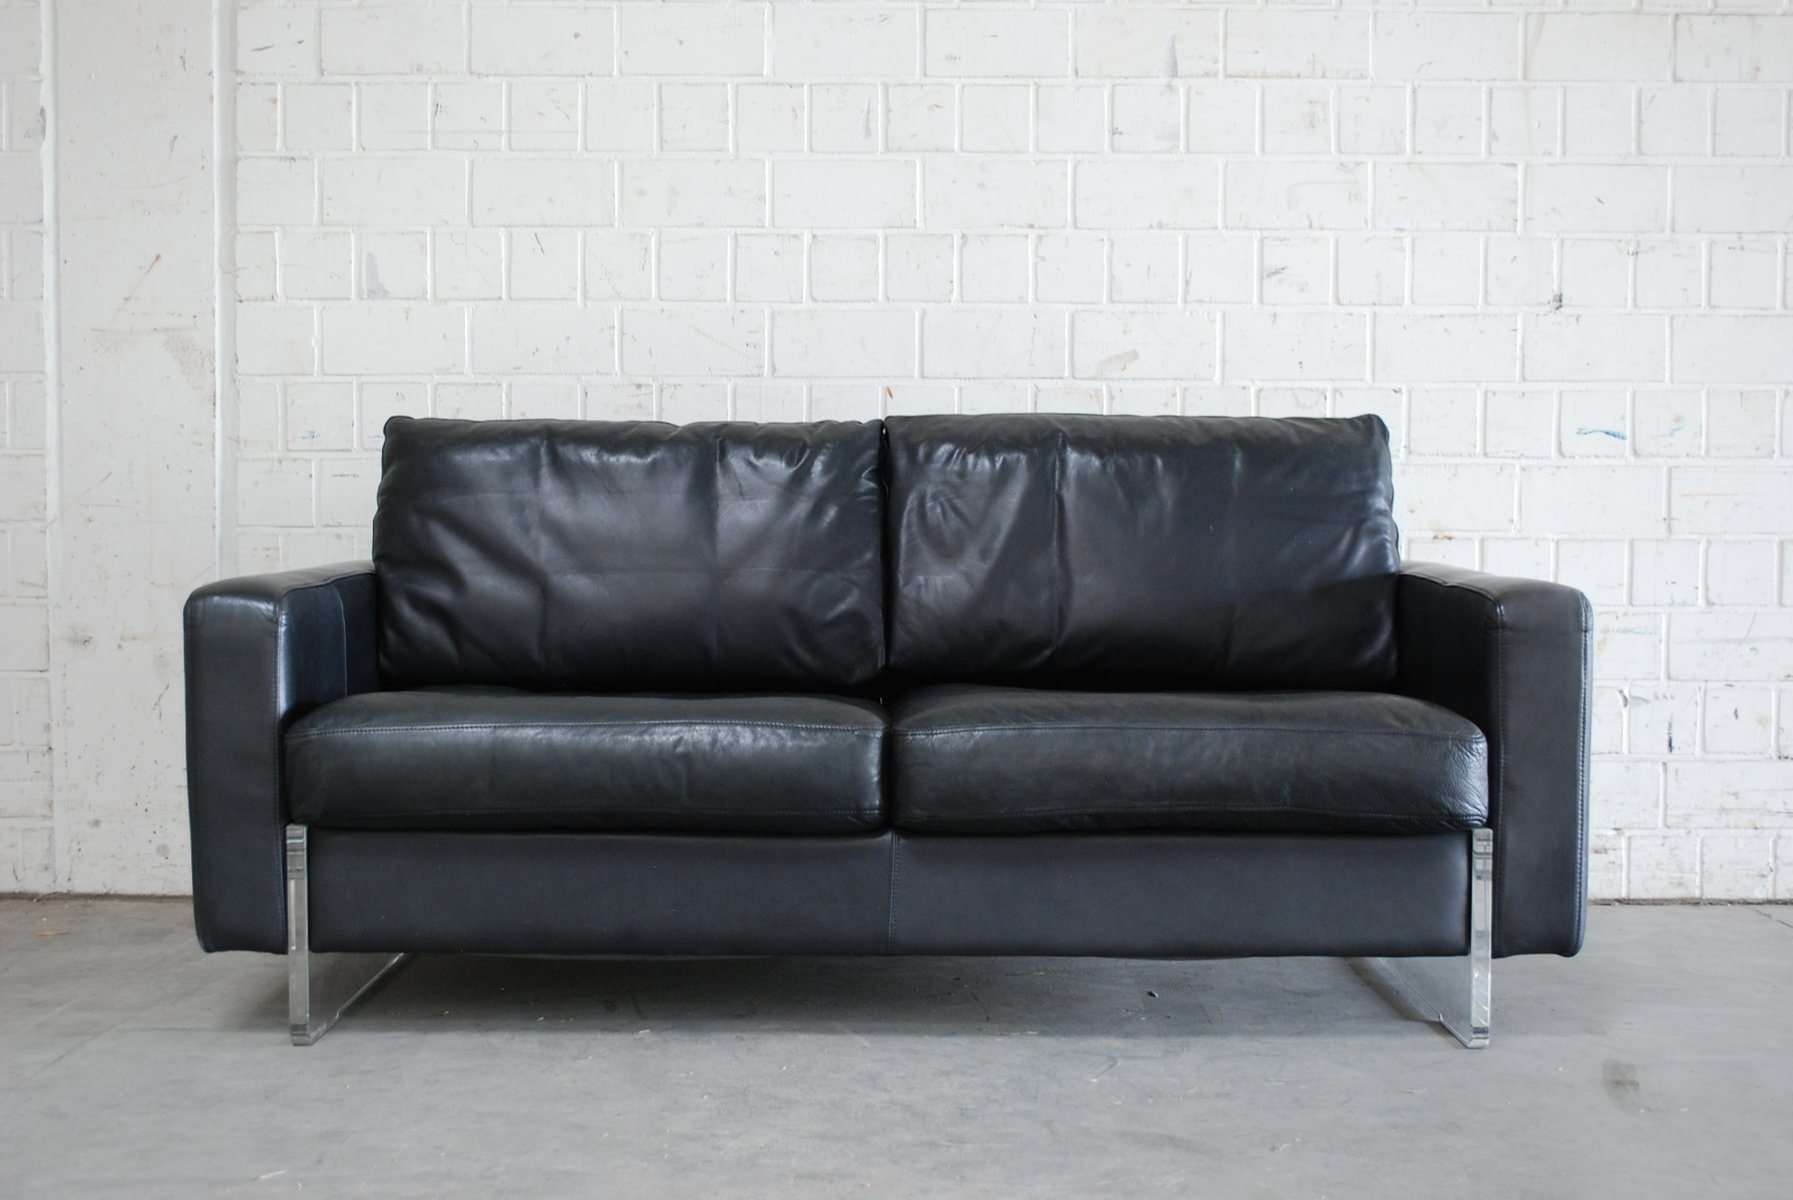 Vintage Black Leather Sofa Sofa Menzilperde Net